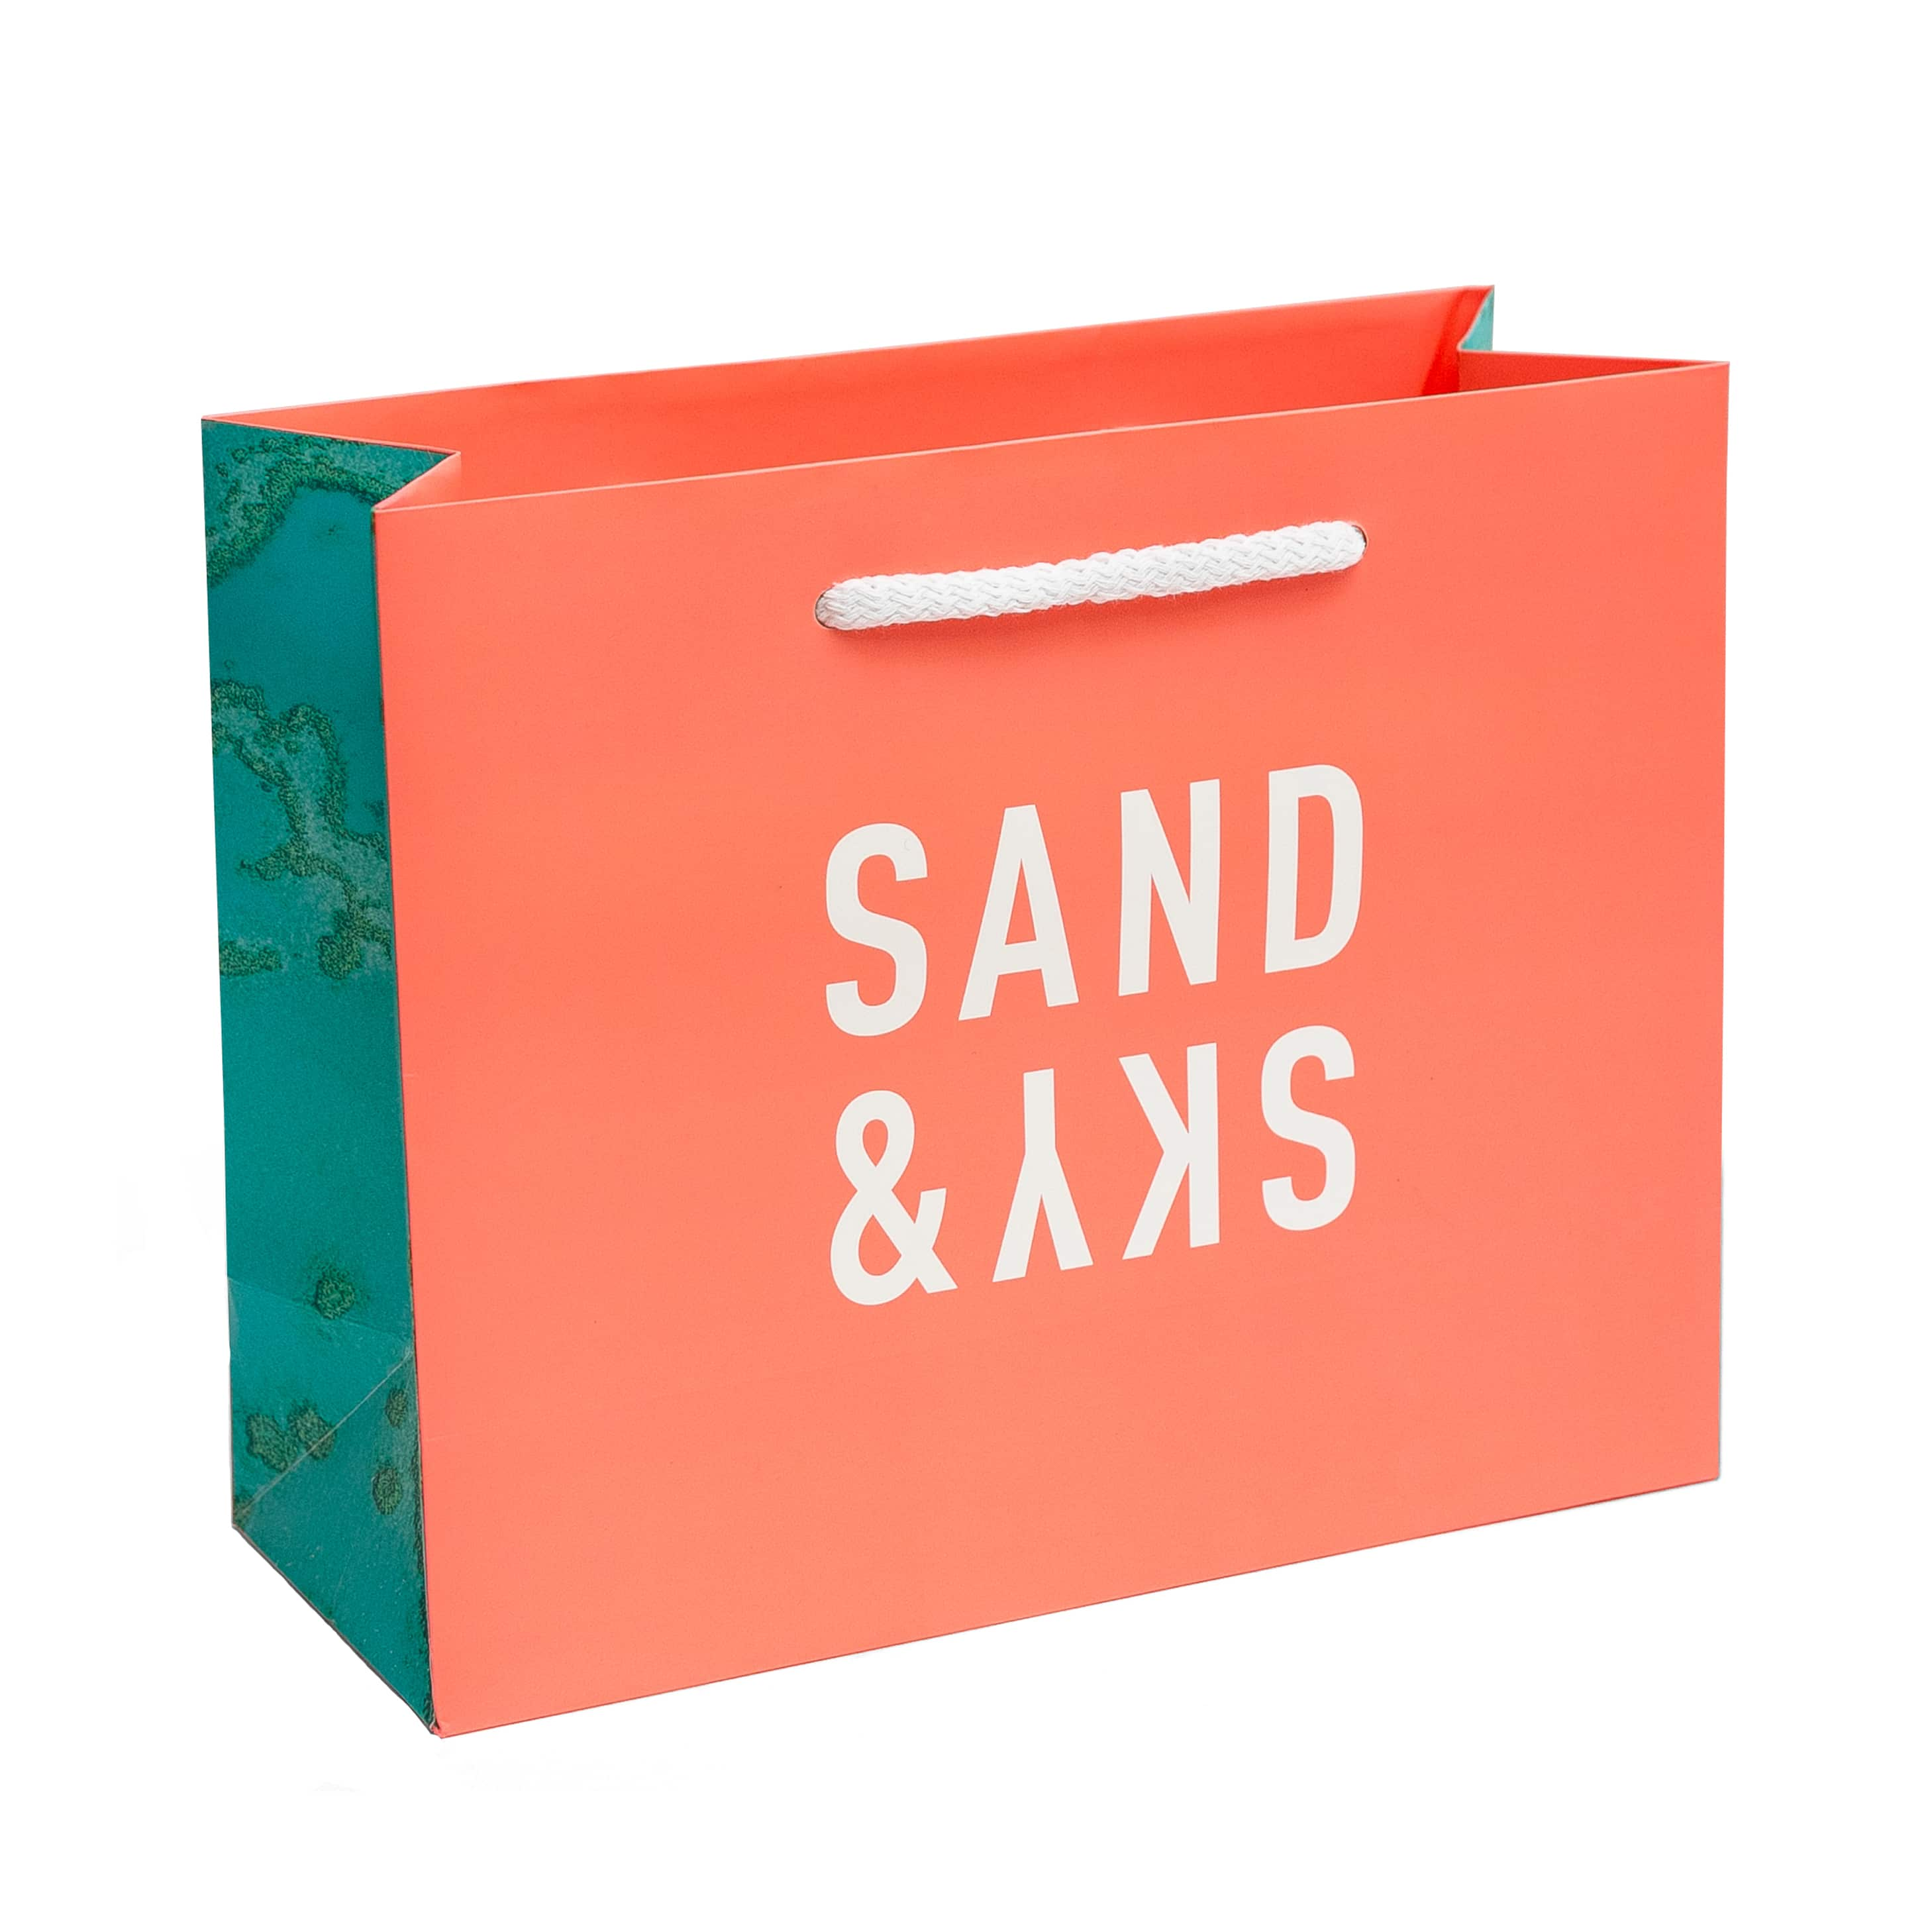 sand-sky-printed-laminated-bag